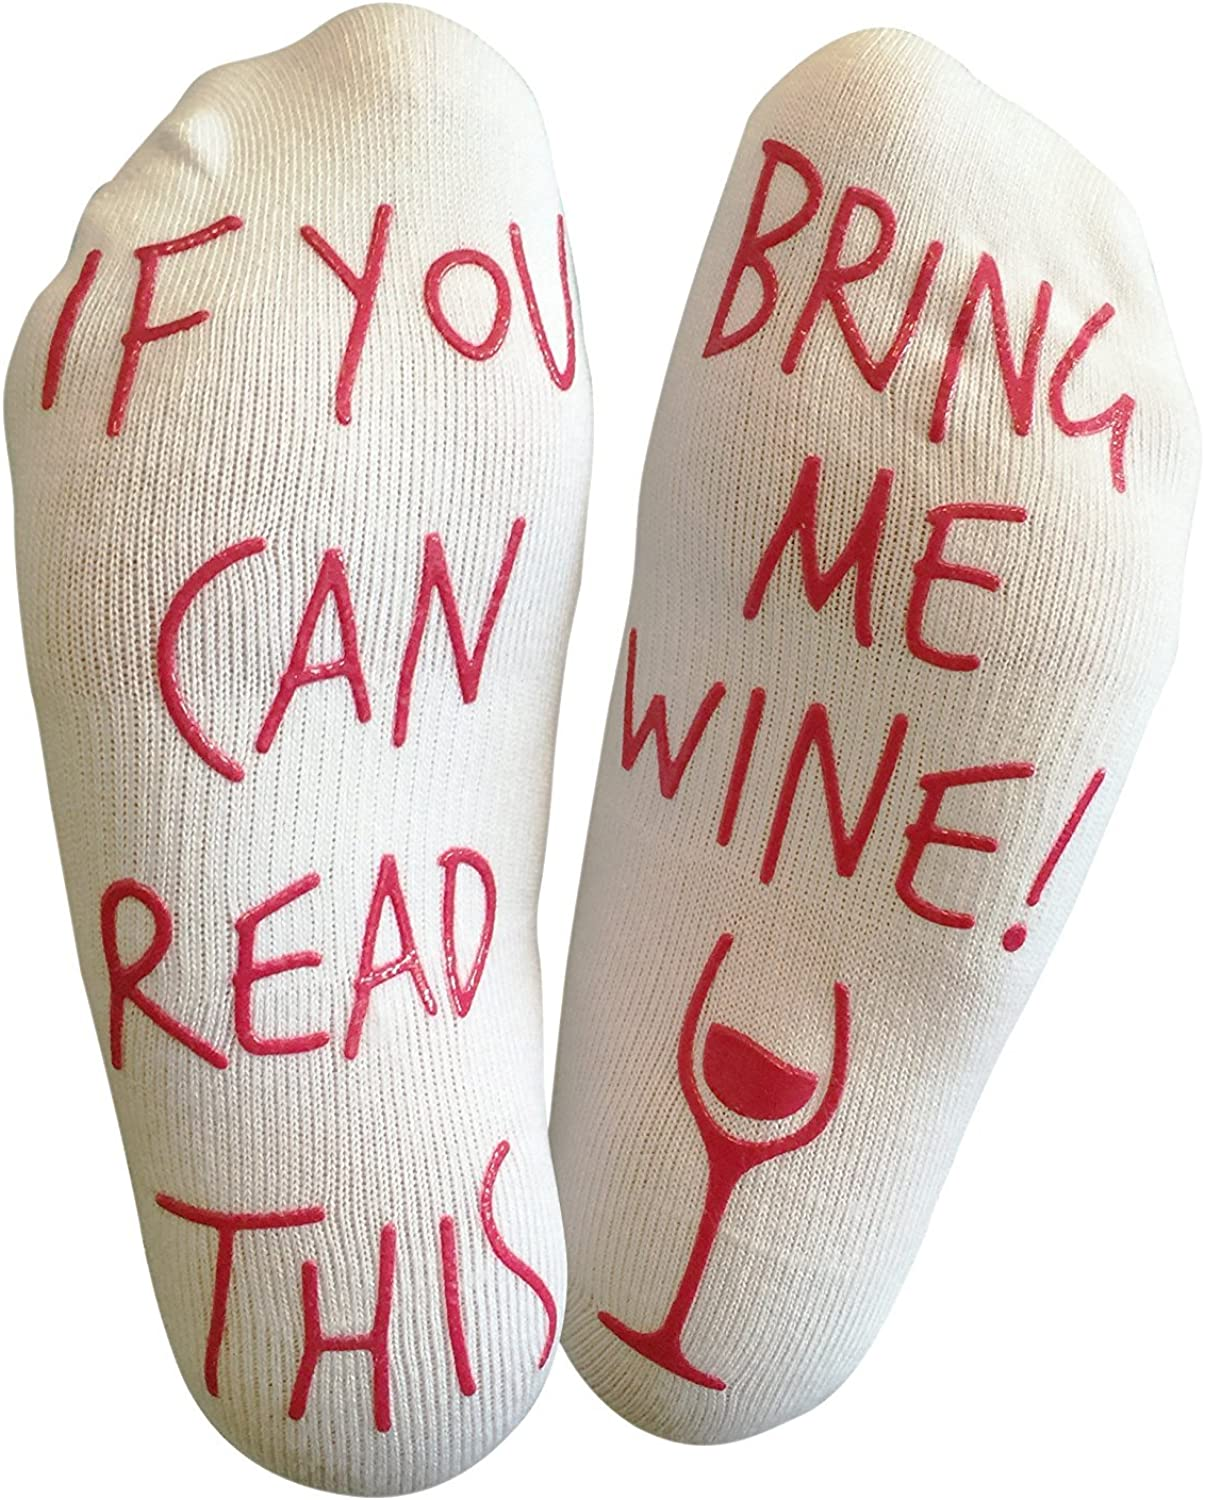 if you can read this bring me wine Socks cotton comfortable Men Women Socks  W0120